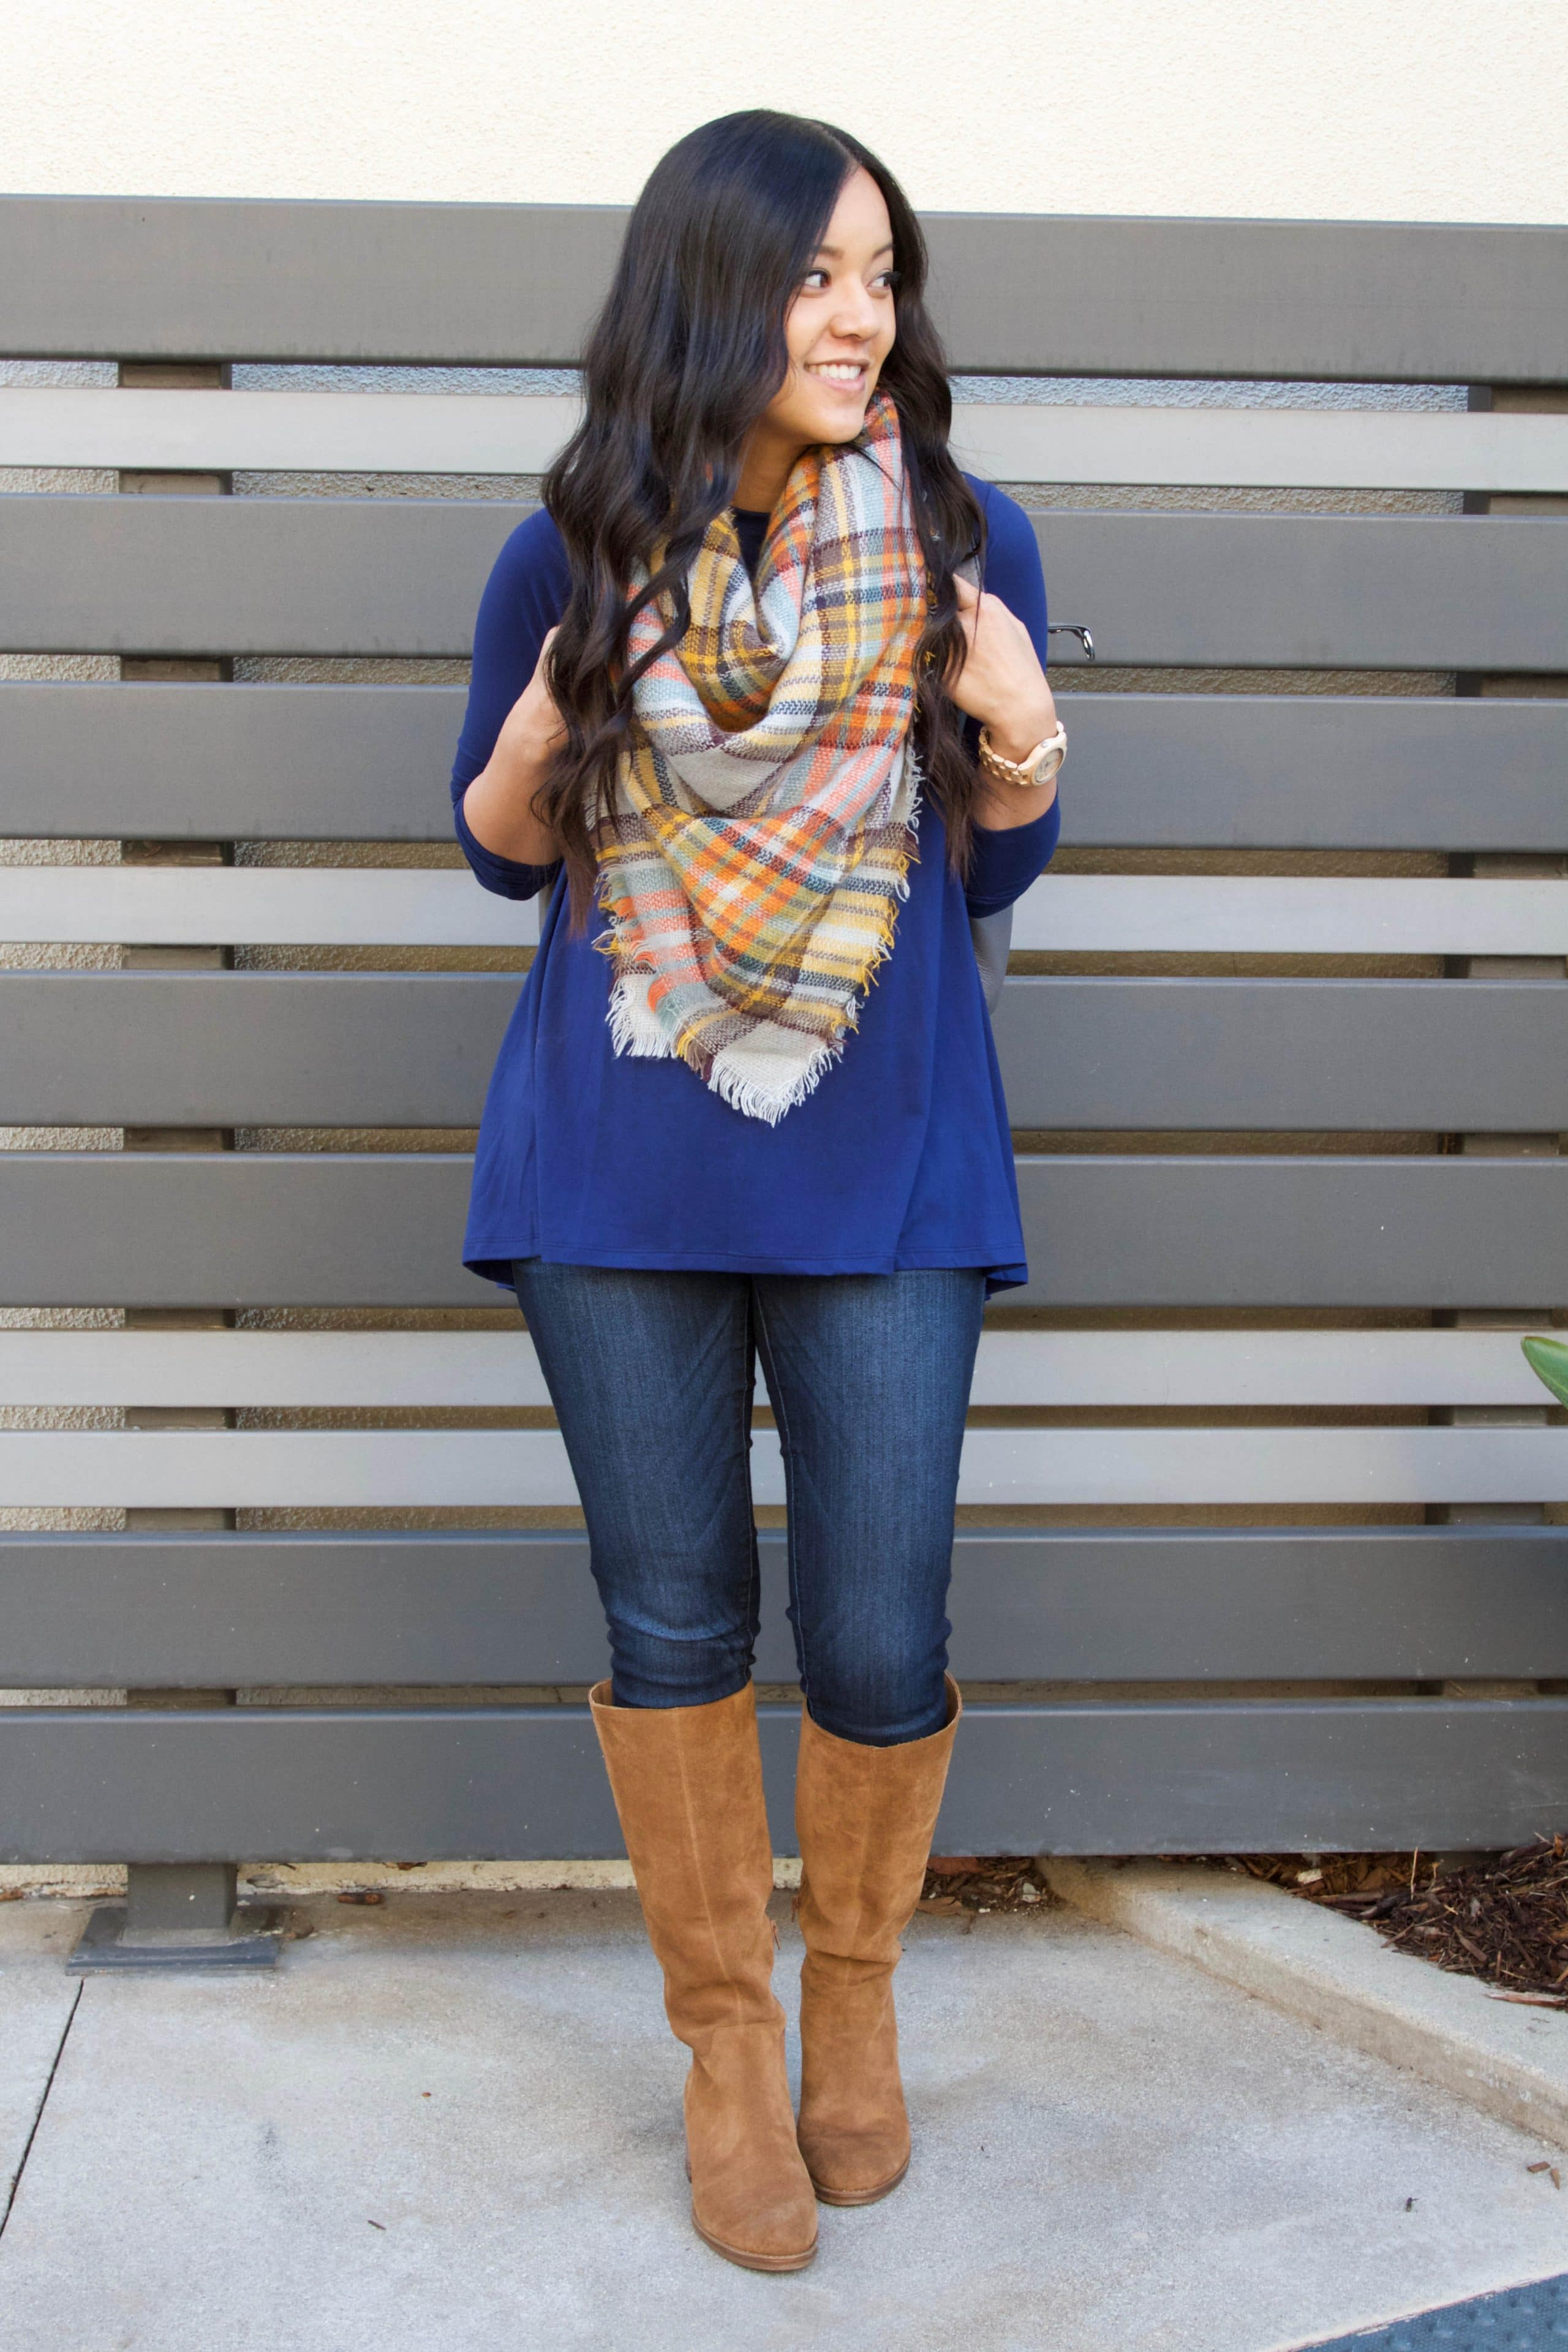 Blanket Scarf + Blue Top + Skinnies + Boots